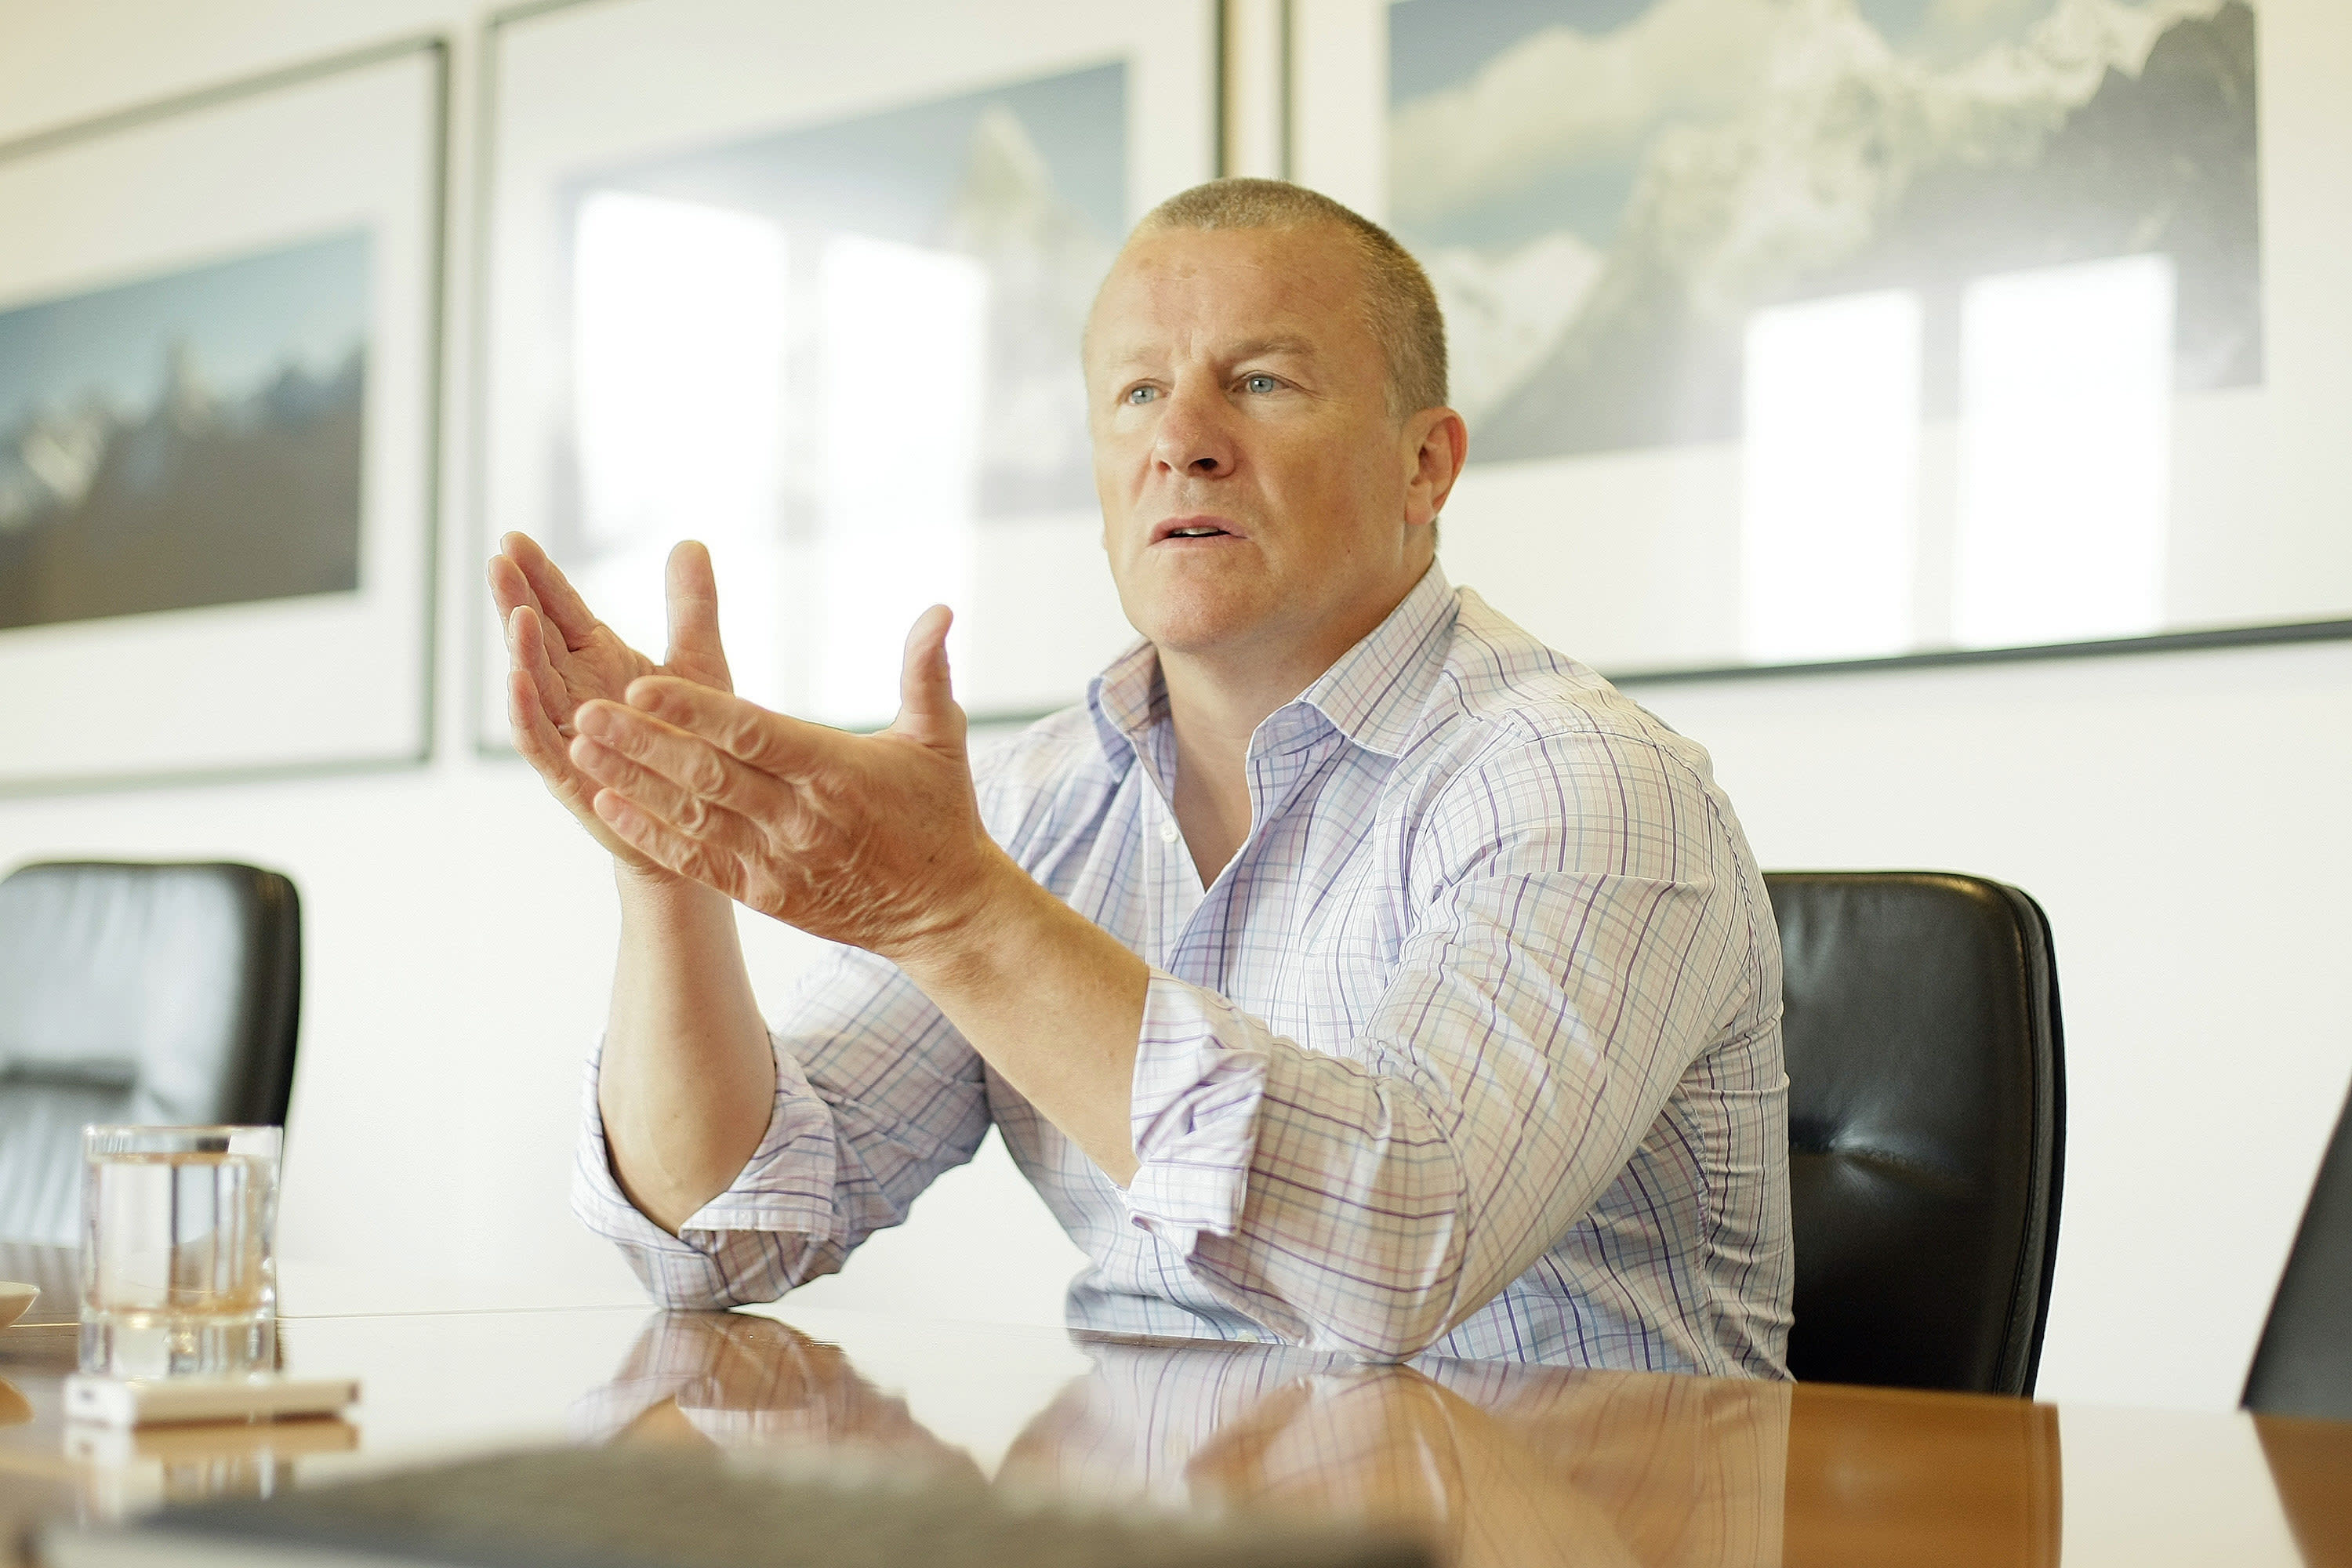 Woodford debacle wipes £63m off pension fund